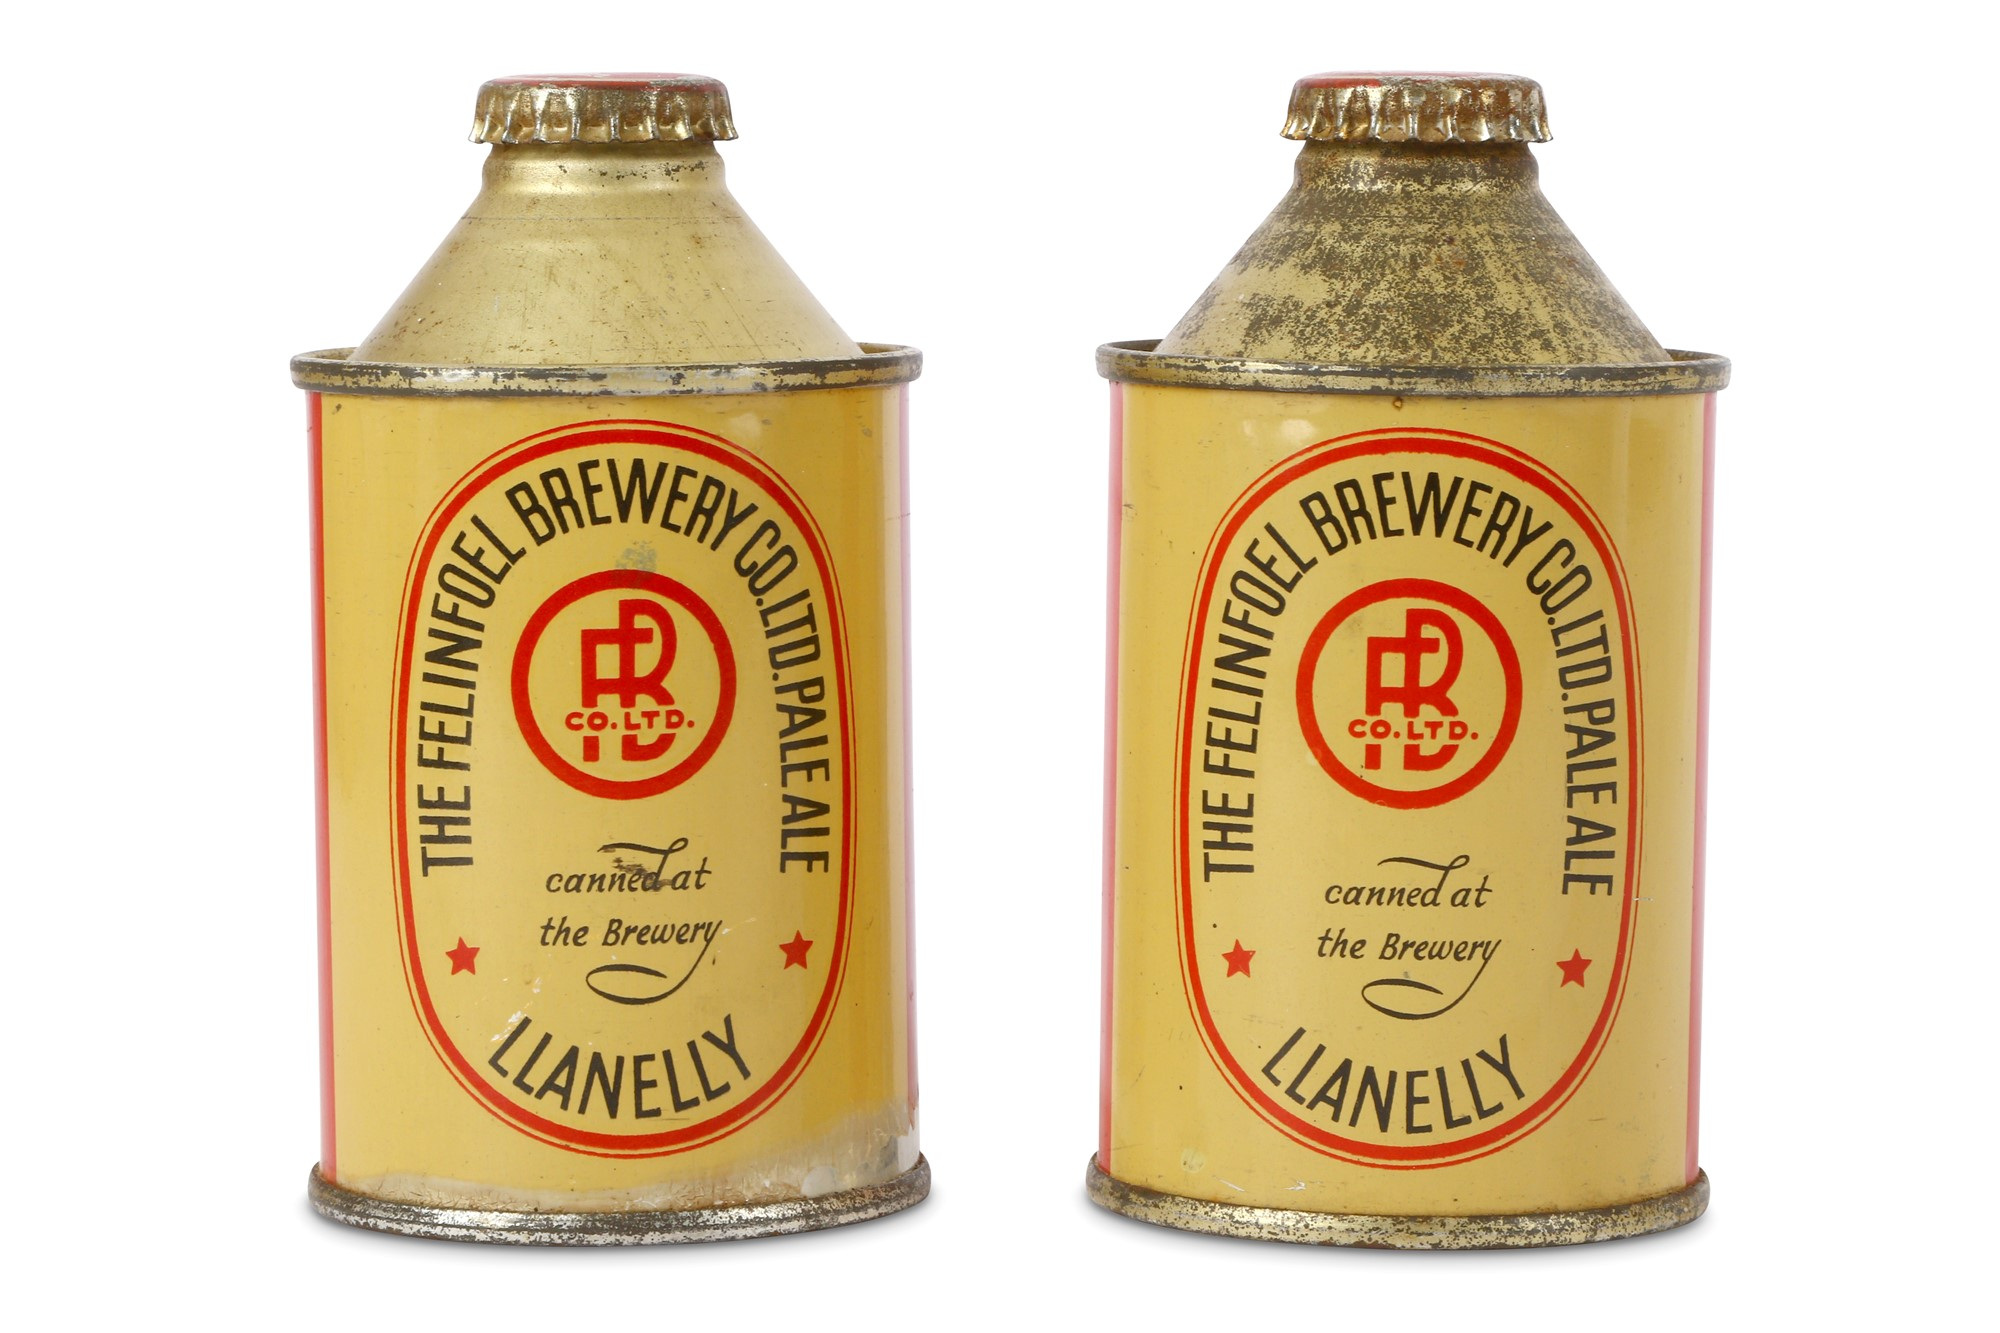 Two Cans of Felinfoel Brewery Pale Ale canned around 1936